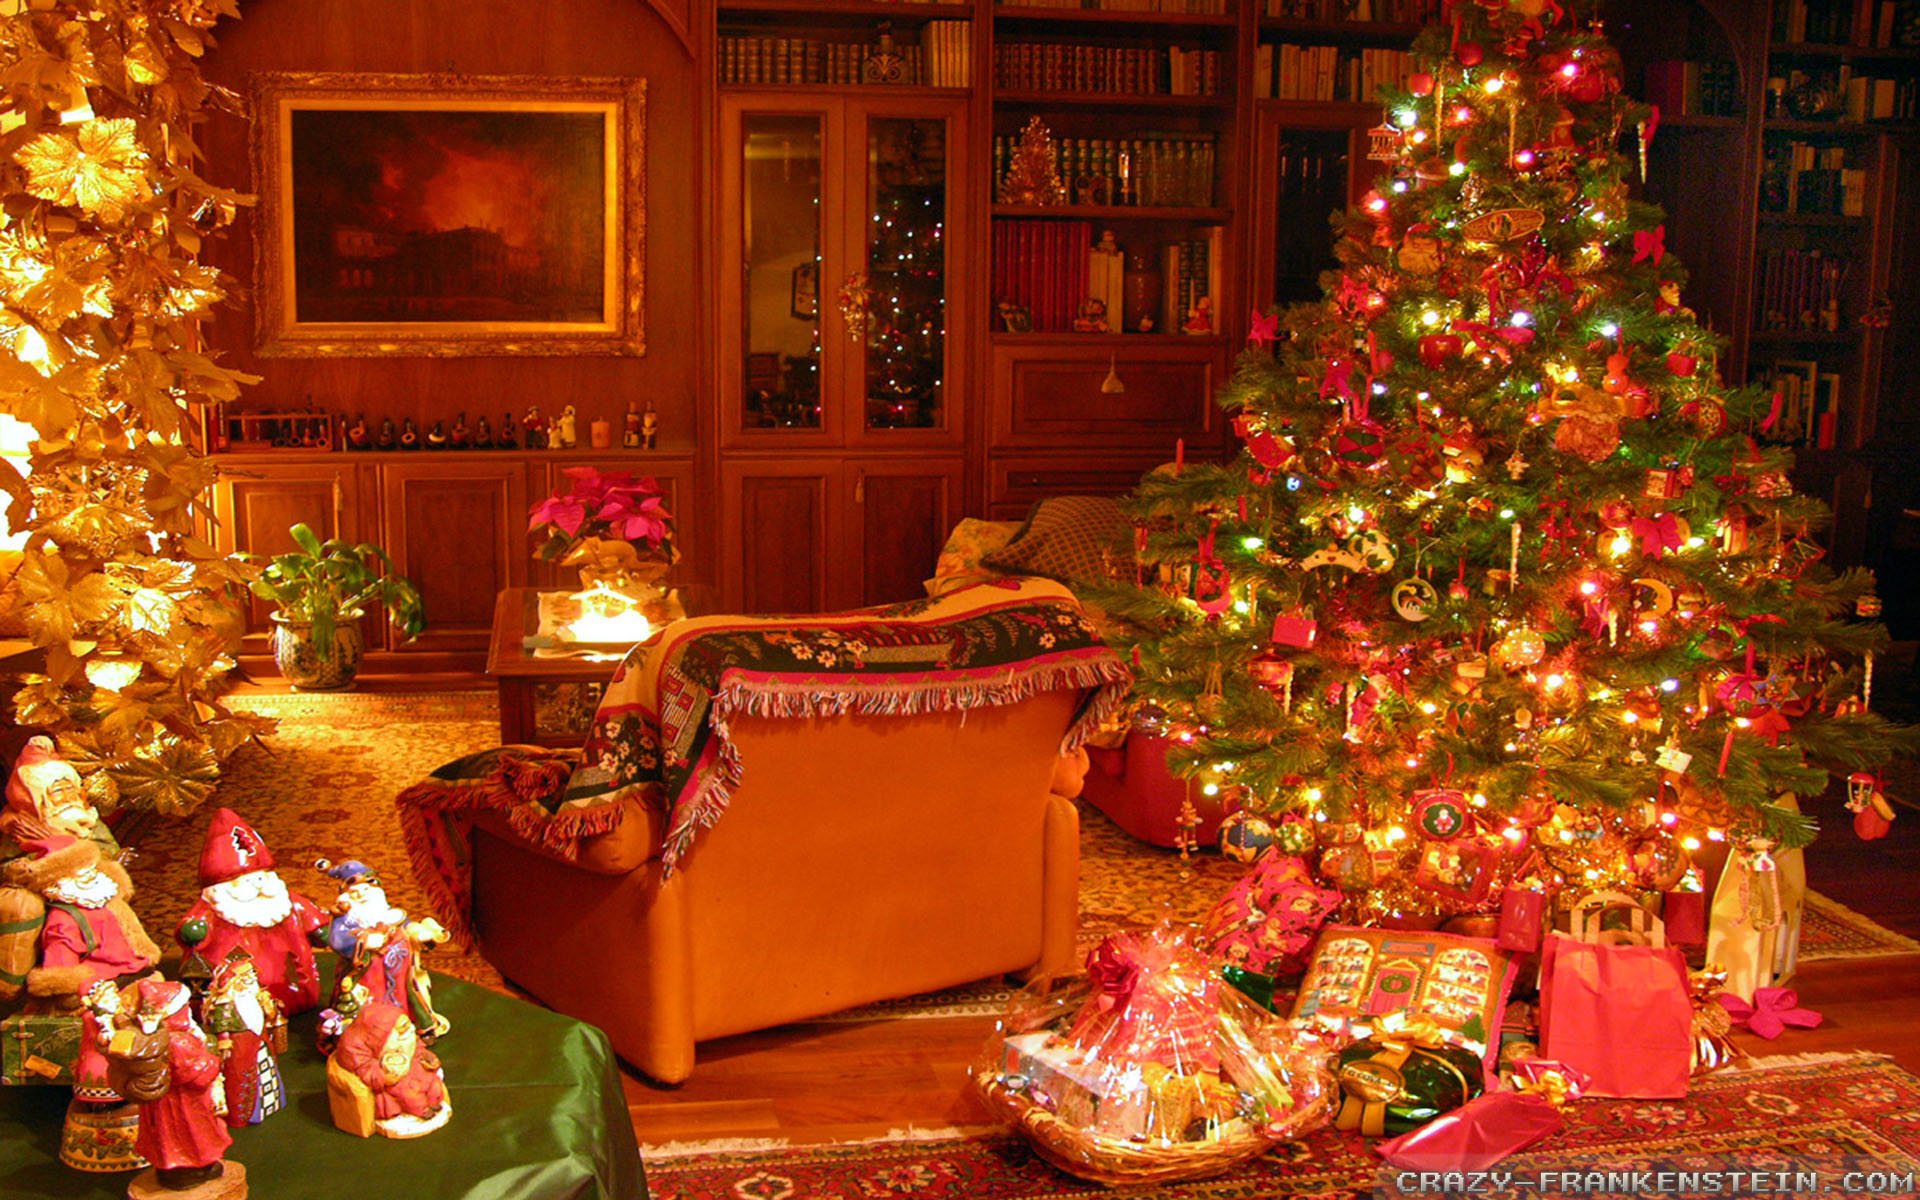 Merry christmas beautiful pictures photo 33141059 fanpop for Pretty christmas pics